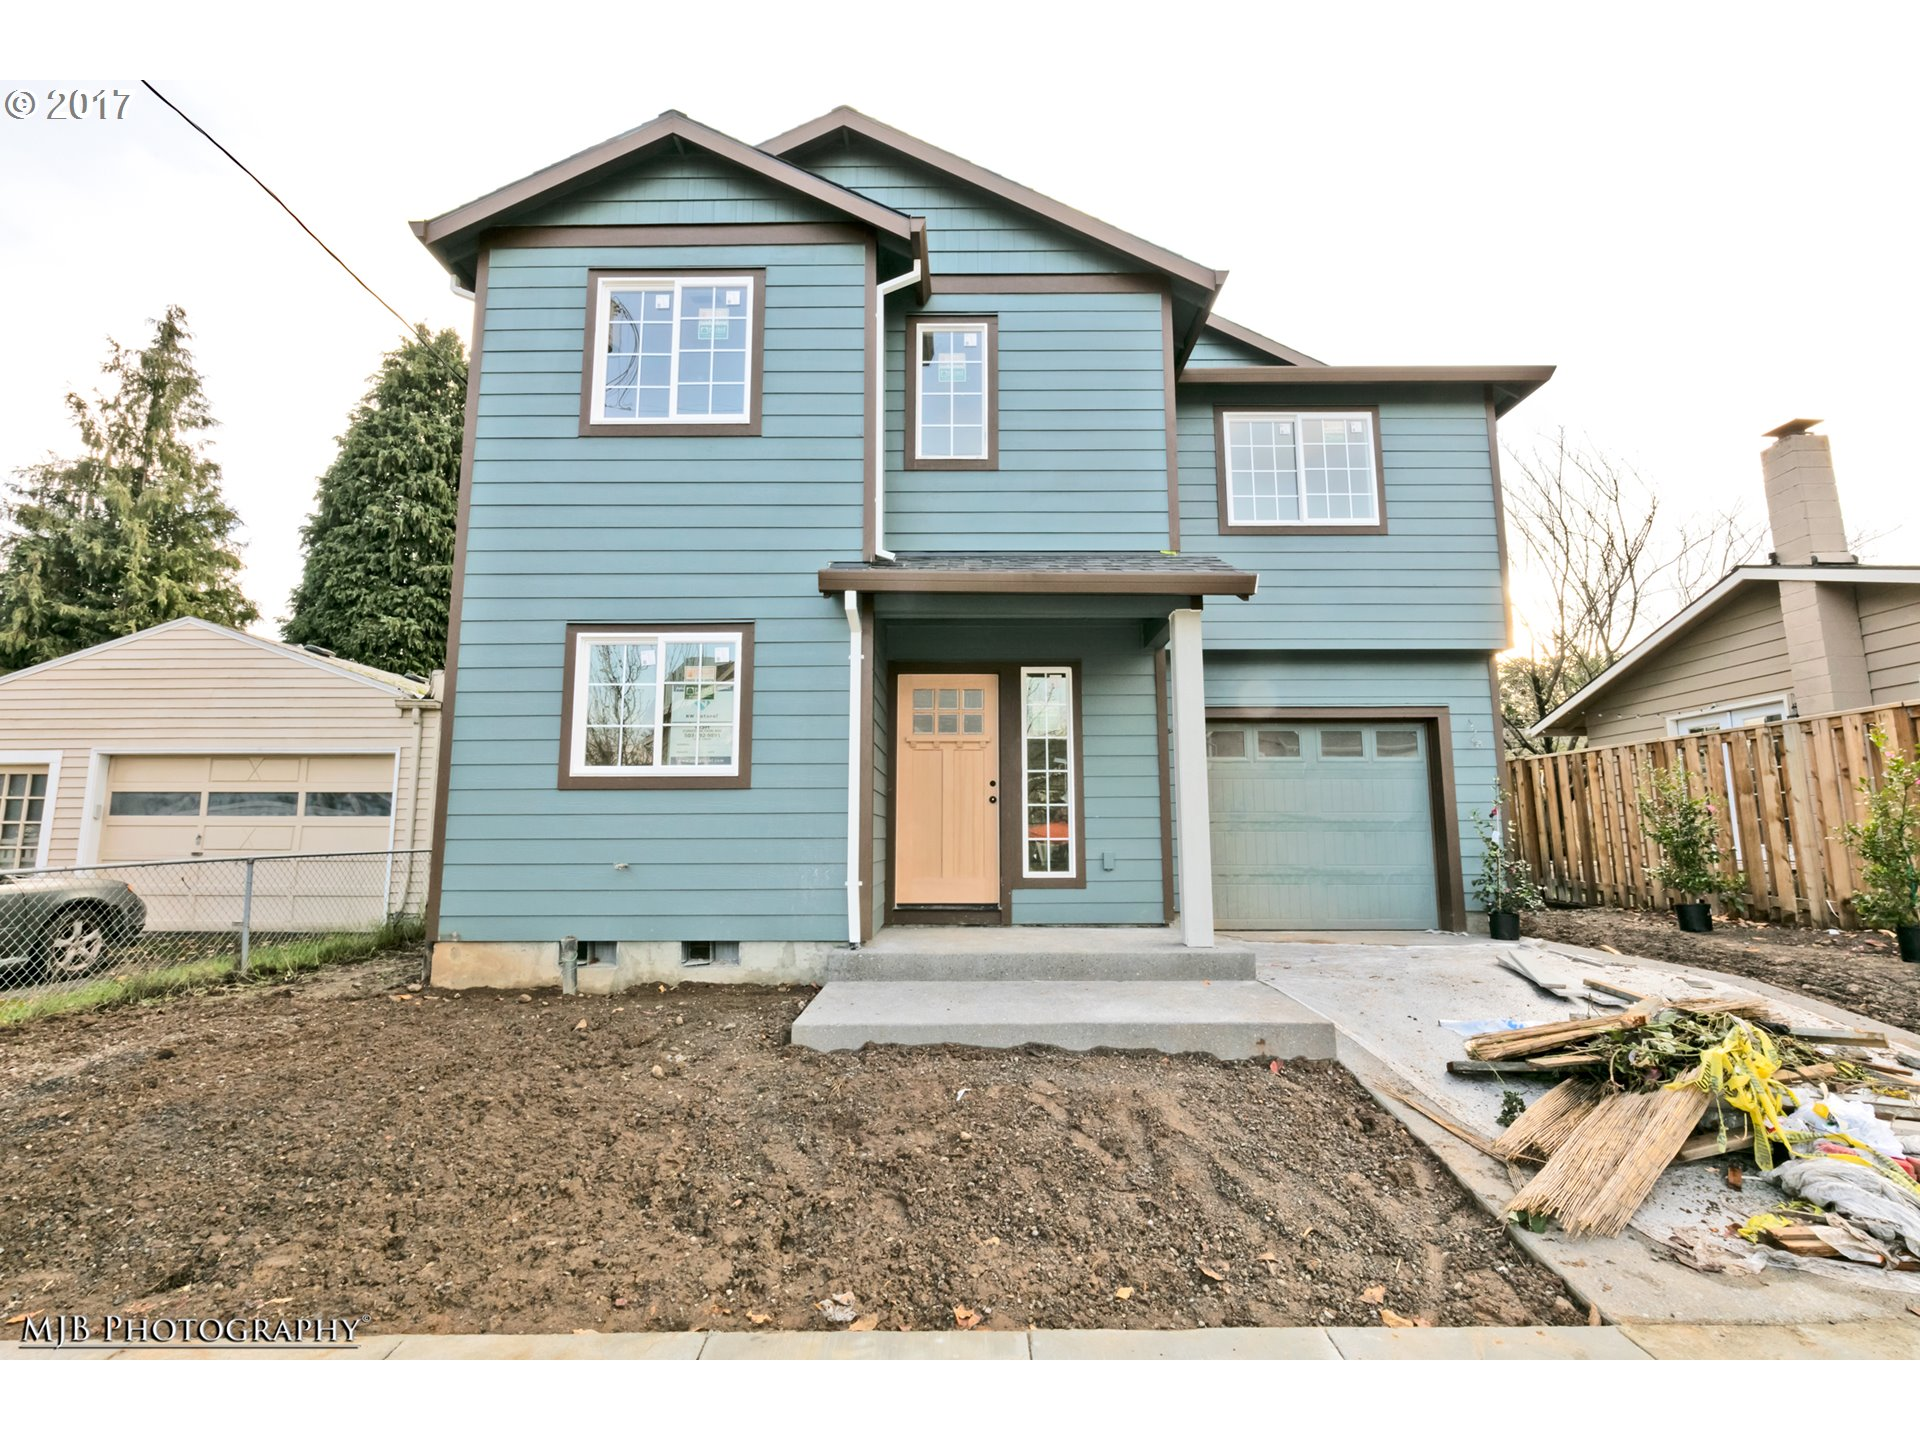 Beautiful new construction w/garage in NoPo near shopping, dining, transit, & freeway access! Bikescore 81! Quality finishes, built by a seasoned local builder! 3 spacious bdrms, 2 1/2 bths w/wood flrs on main, open kitch w/SS apps, forced air heating, hi-ceilings, & much more! Completion in time for the New Year!